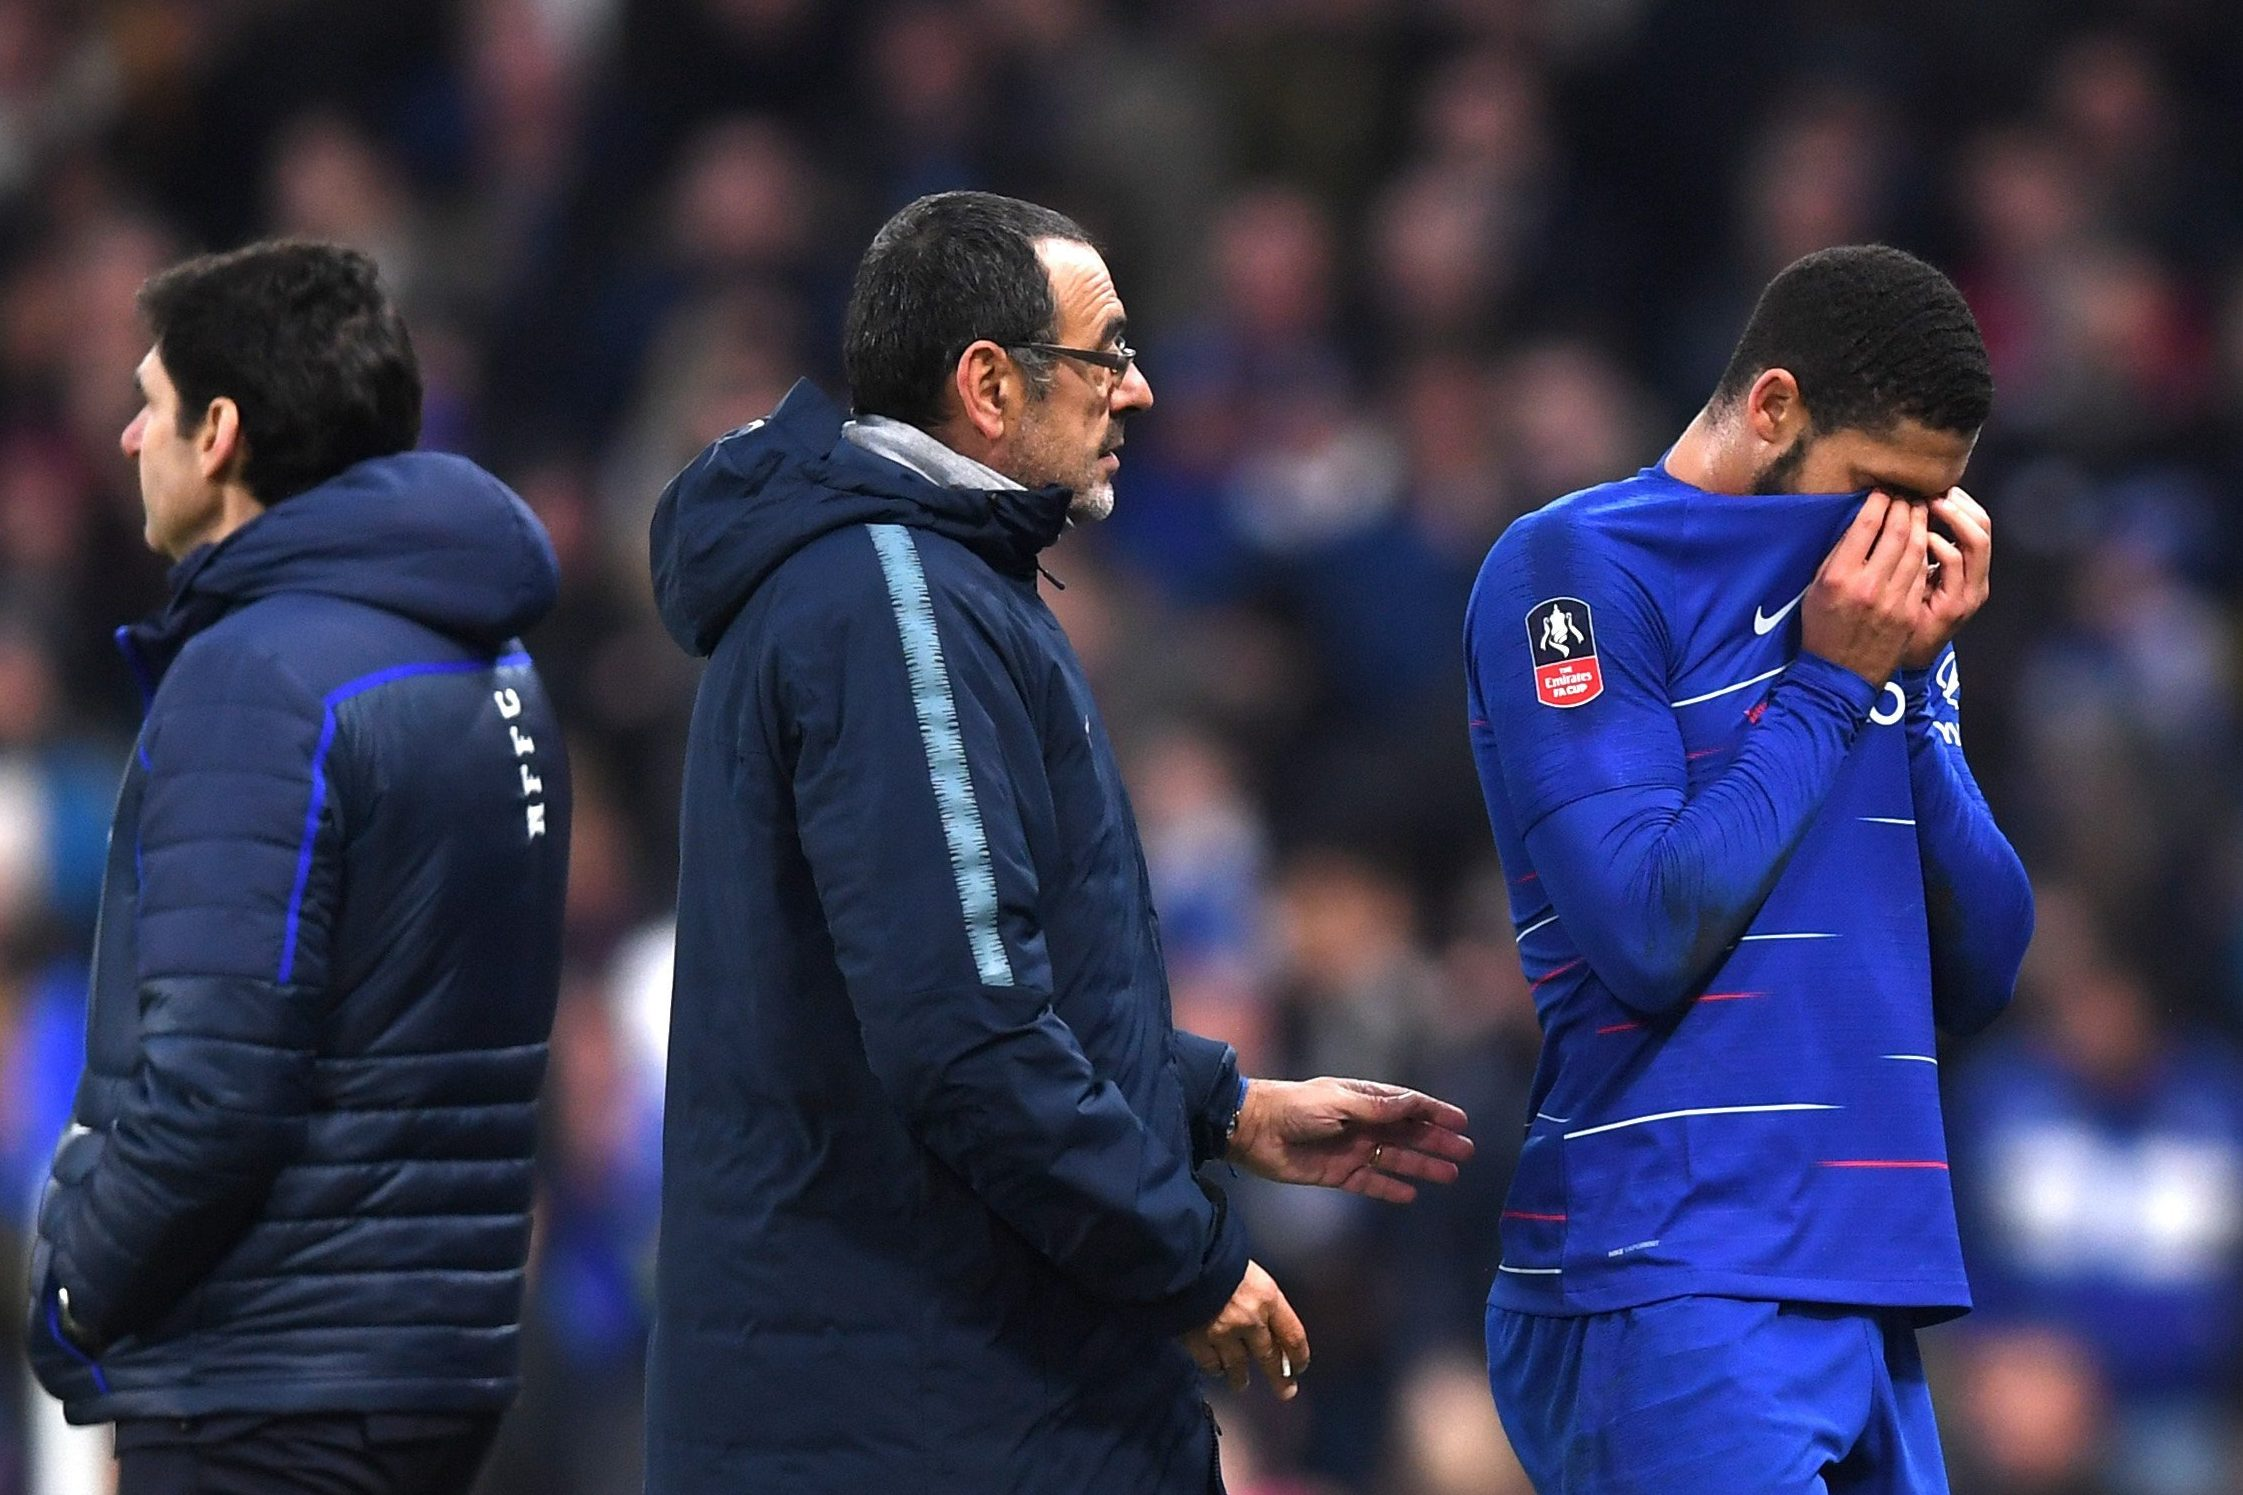 LONDON, ENGLAND - JANUARY 05: Ruben Loftus-Cheek of Chelsea reacts to being subbed due to injury as Maurizio Sarri, Manager of Chelsea looks on during the FA Cup Third Round match between Chelsea and Nottingham Forest at Stamford Bridge on January 5, 2019 in London, United Kingdom. (Photo by Darren Walsh/Chelsea FC via Getty Images)